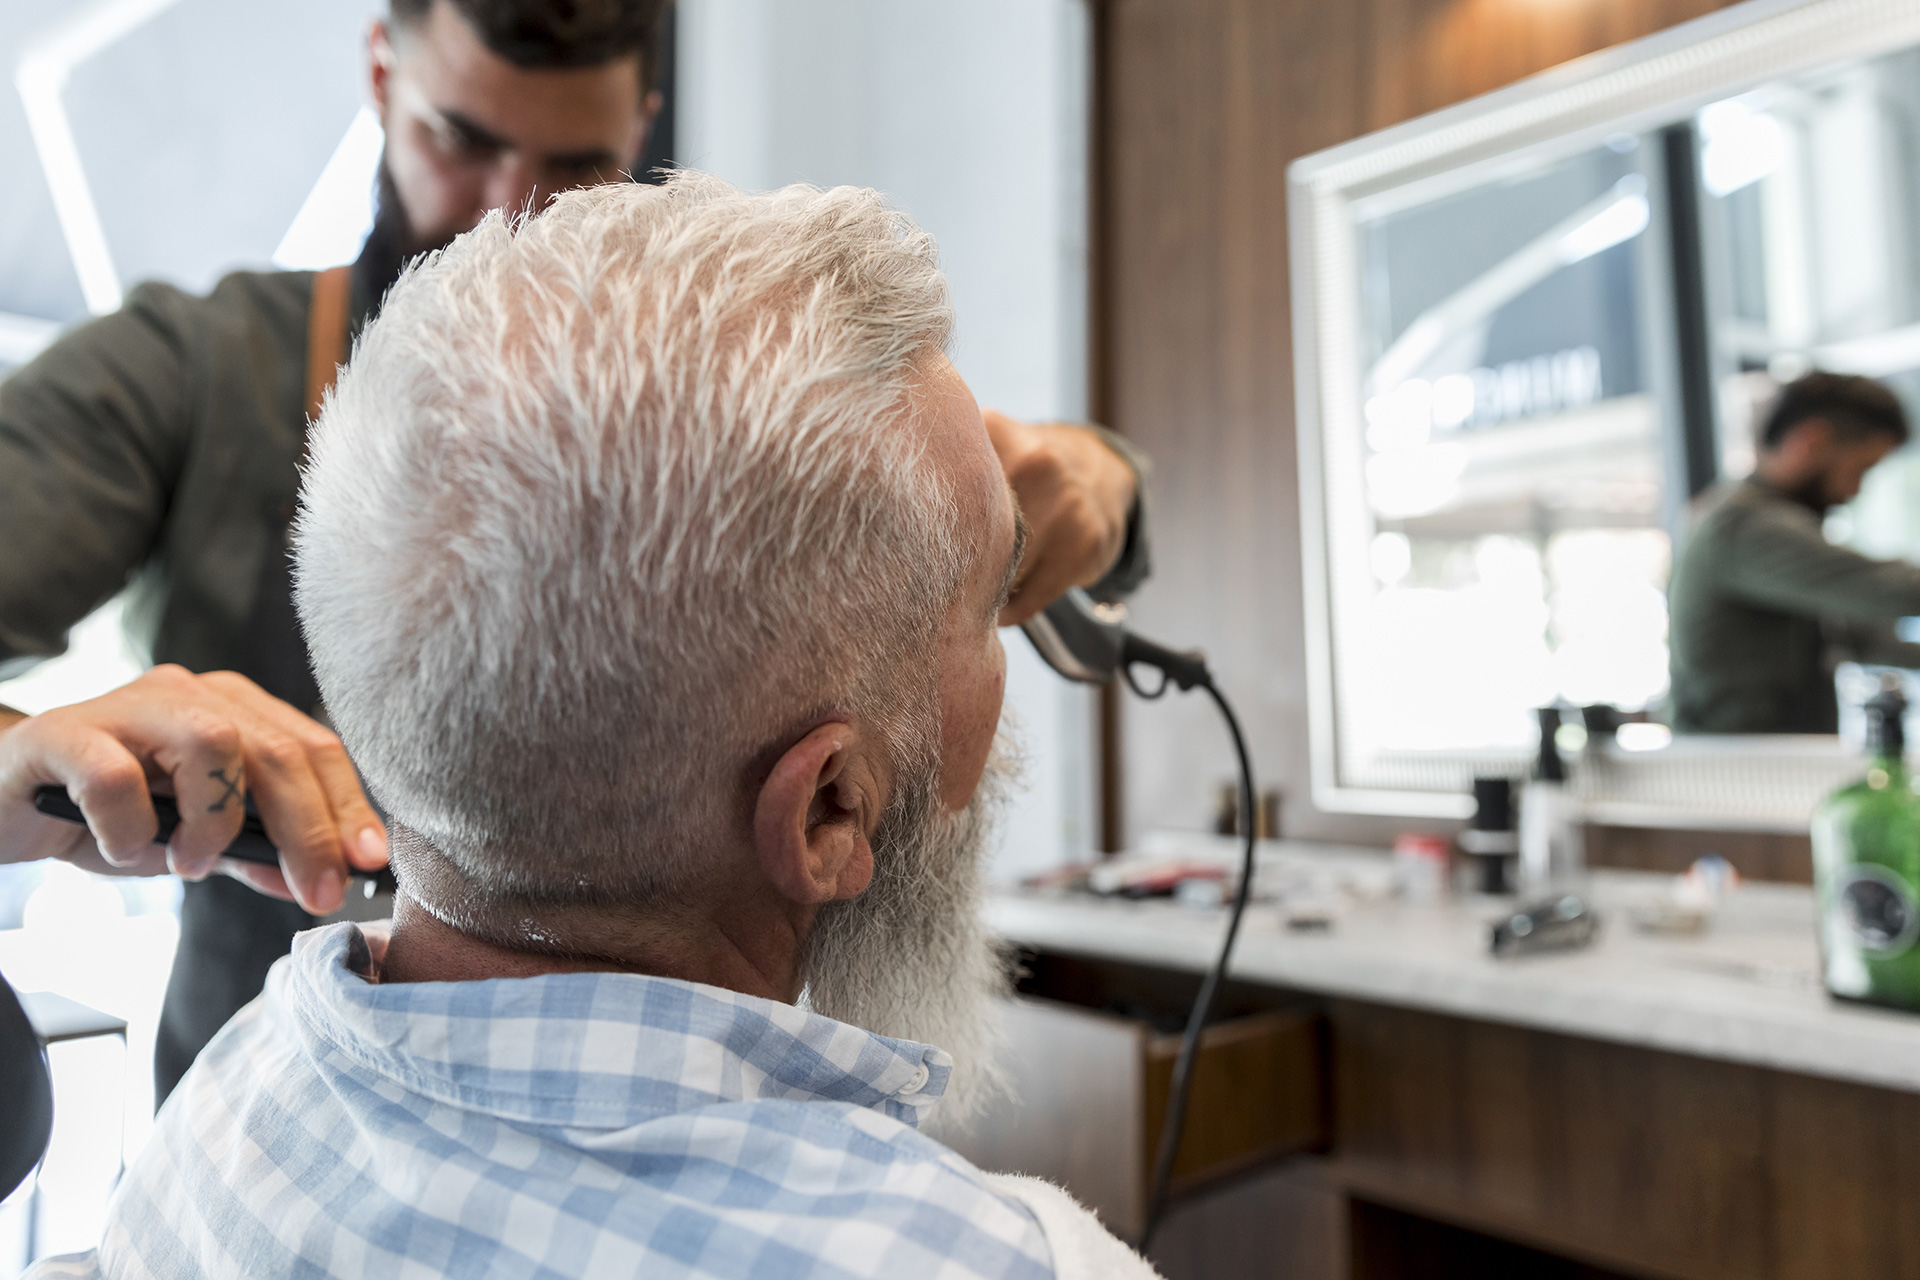 The Culture/History of Barbering